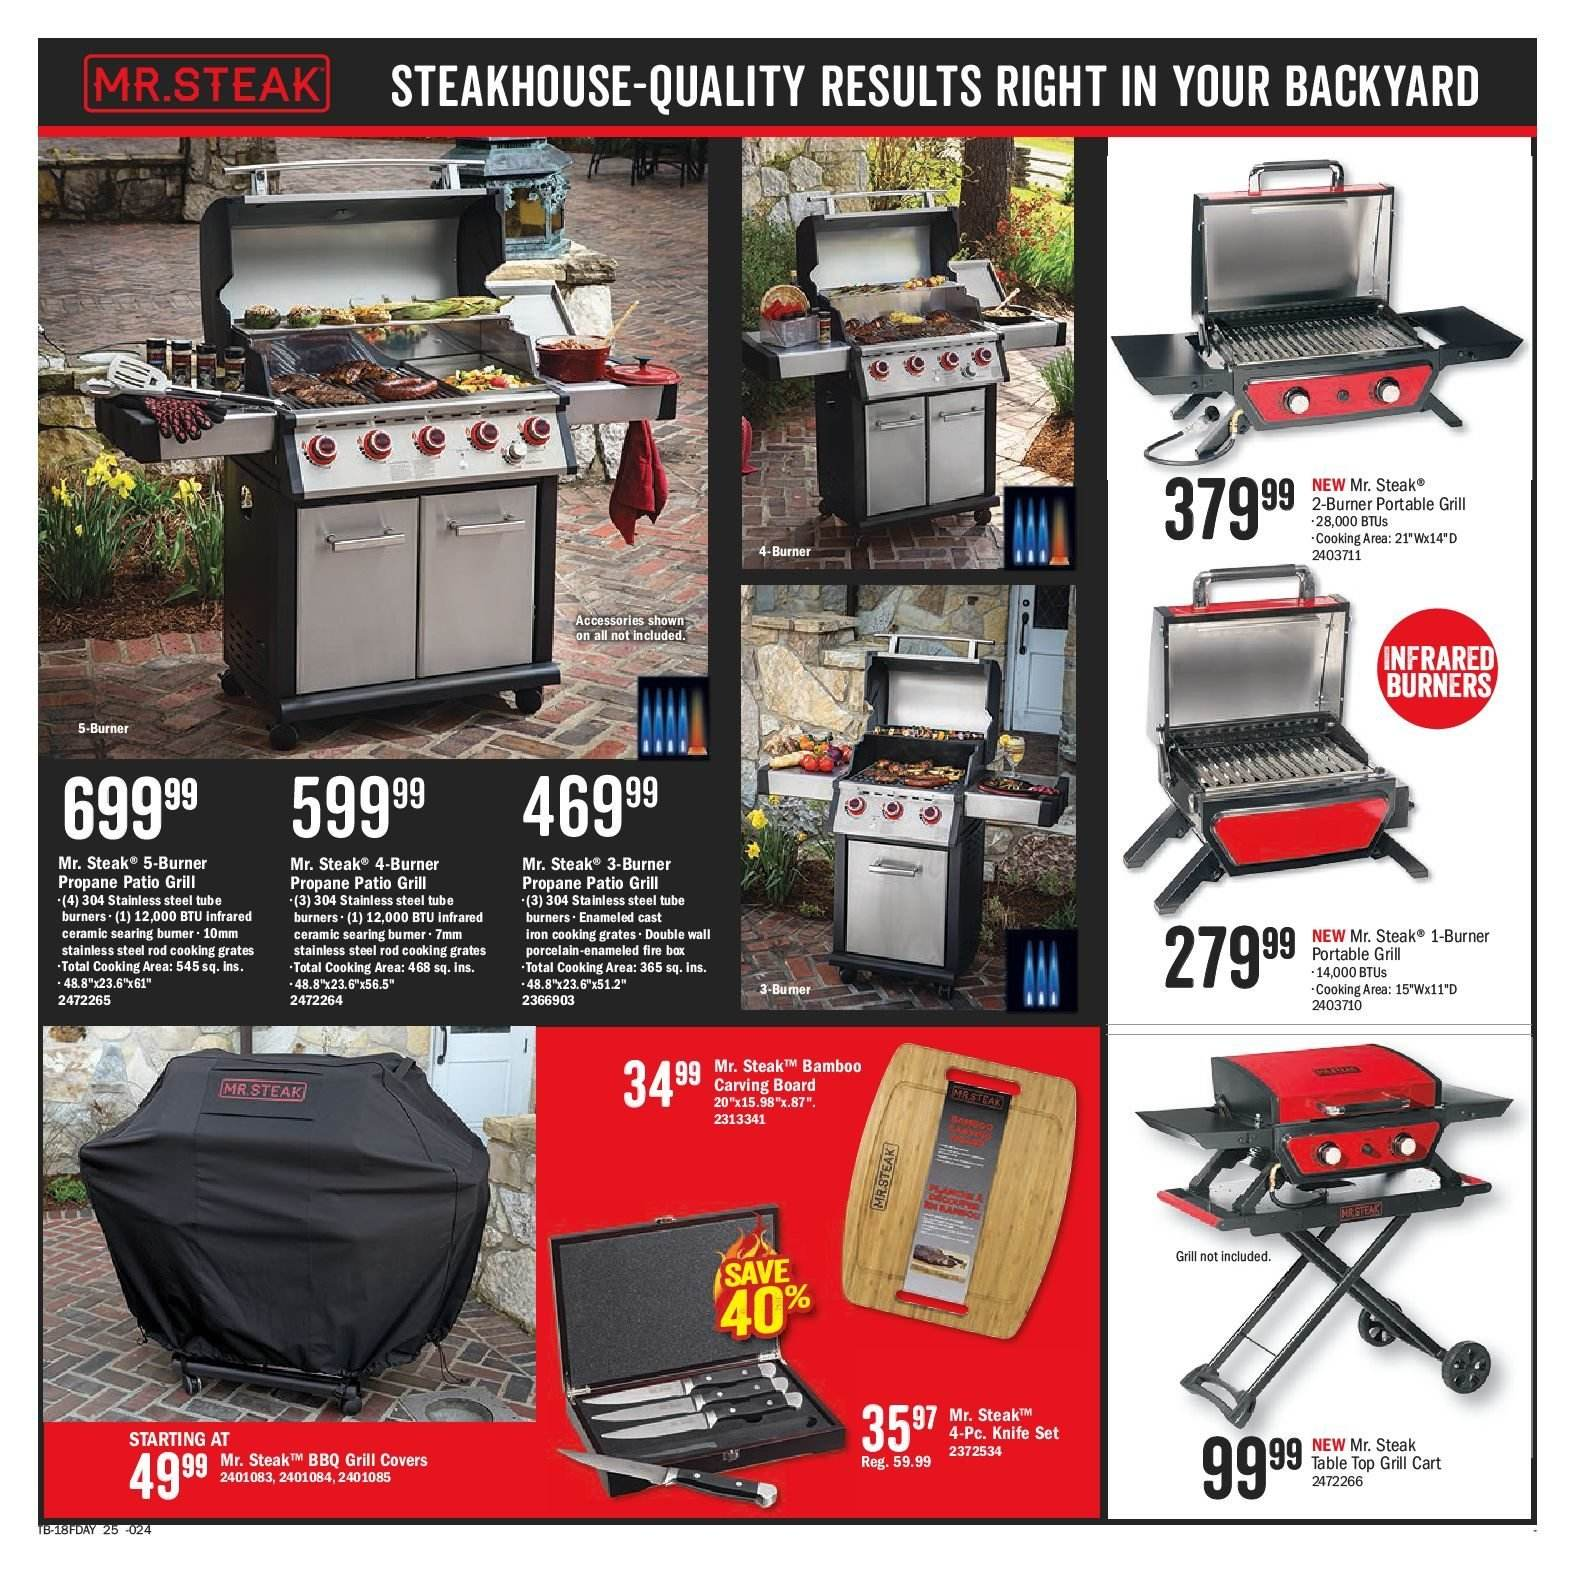 Bass Pro Shops Flyer  - May 29, 2018 - June 17, 2018. Page 29.